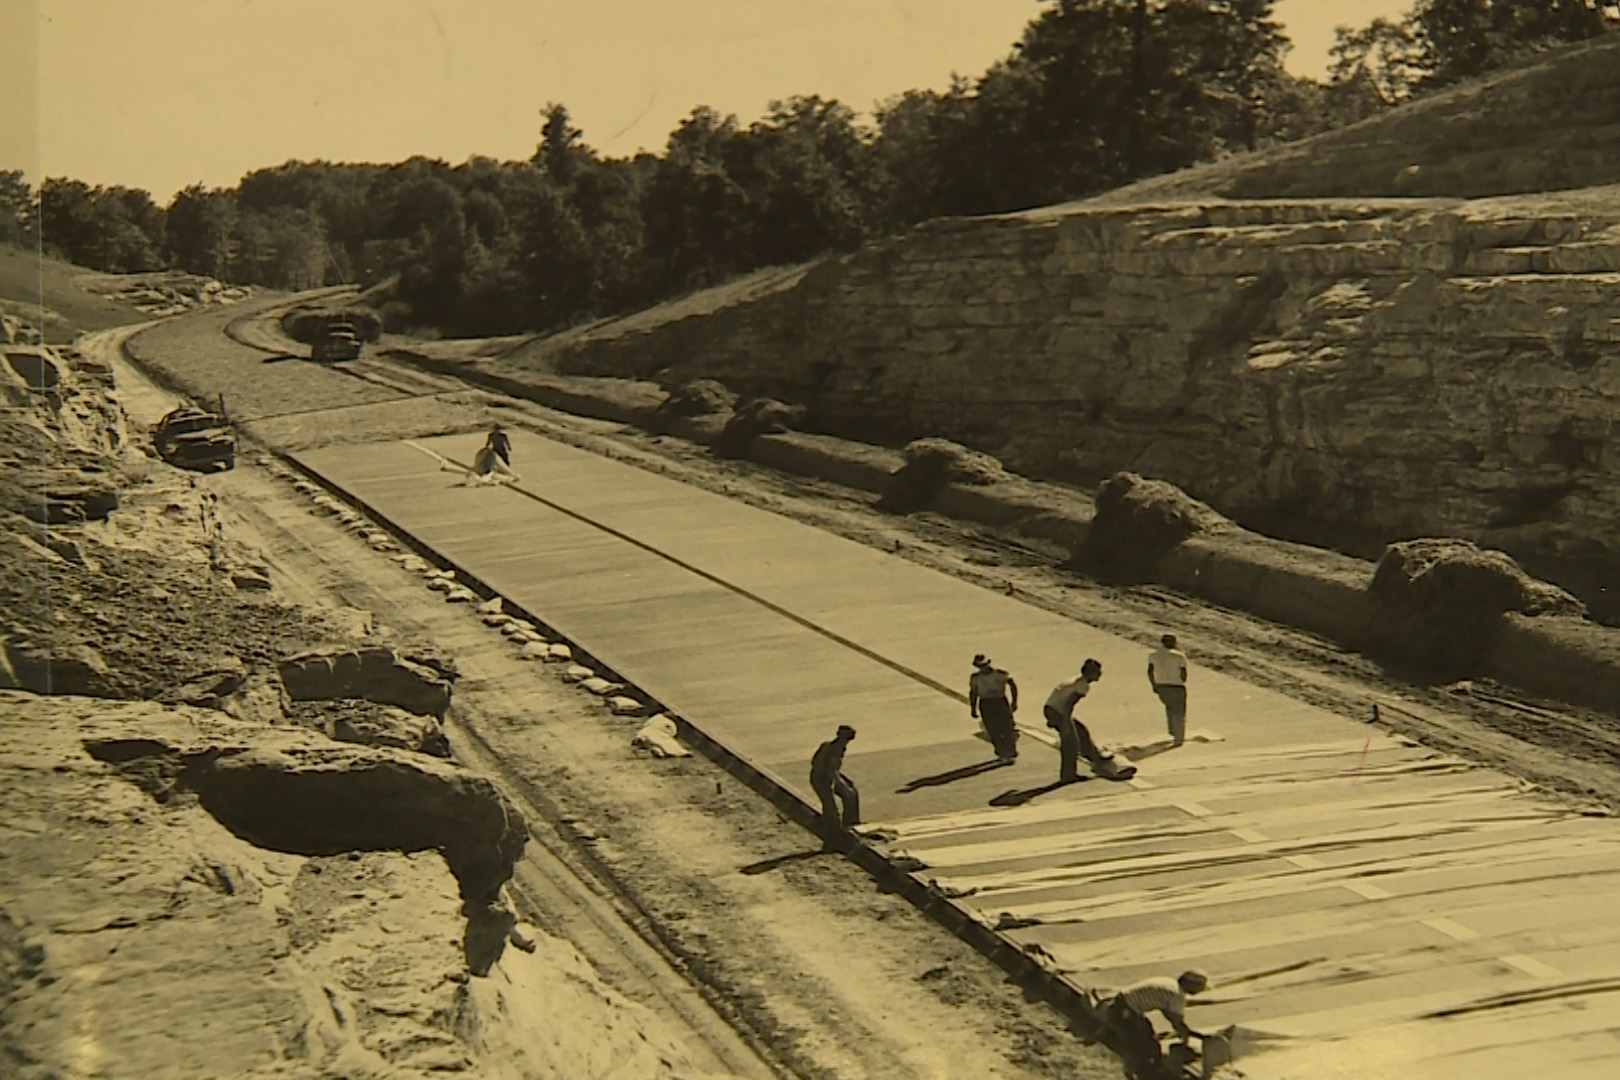 men working on a road